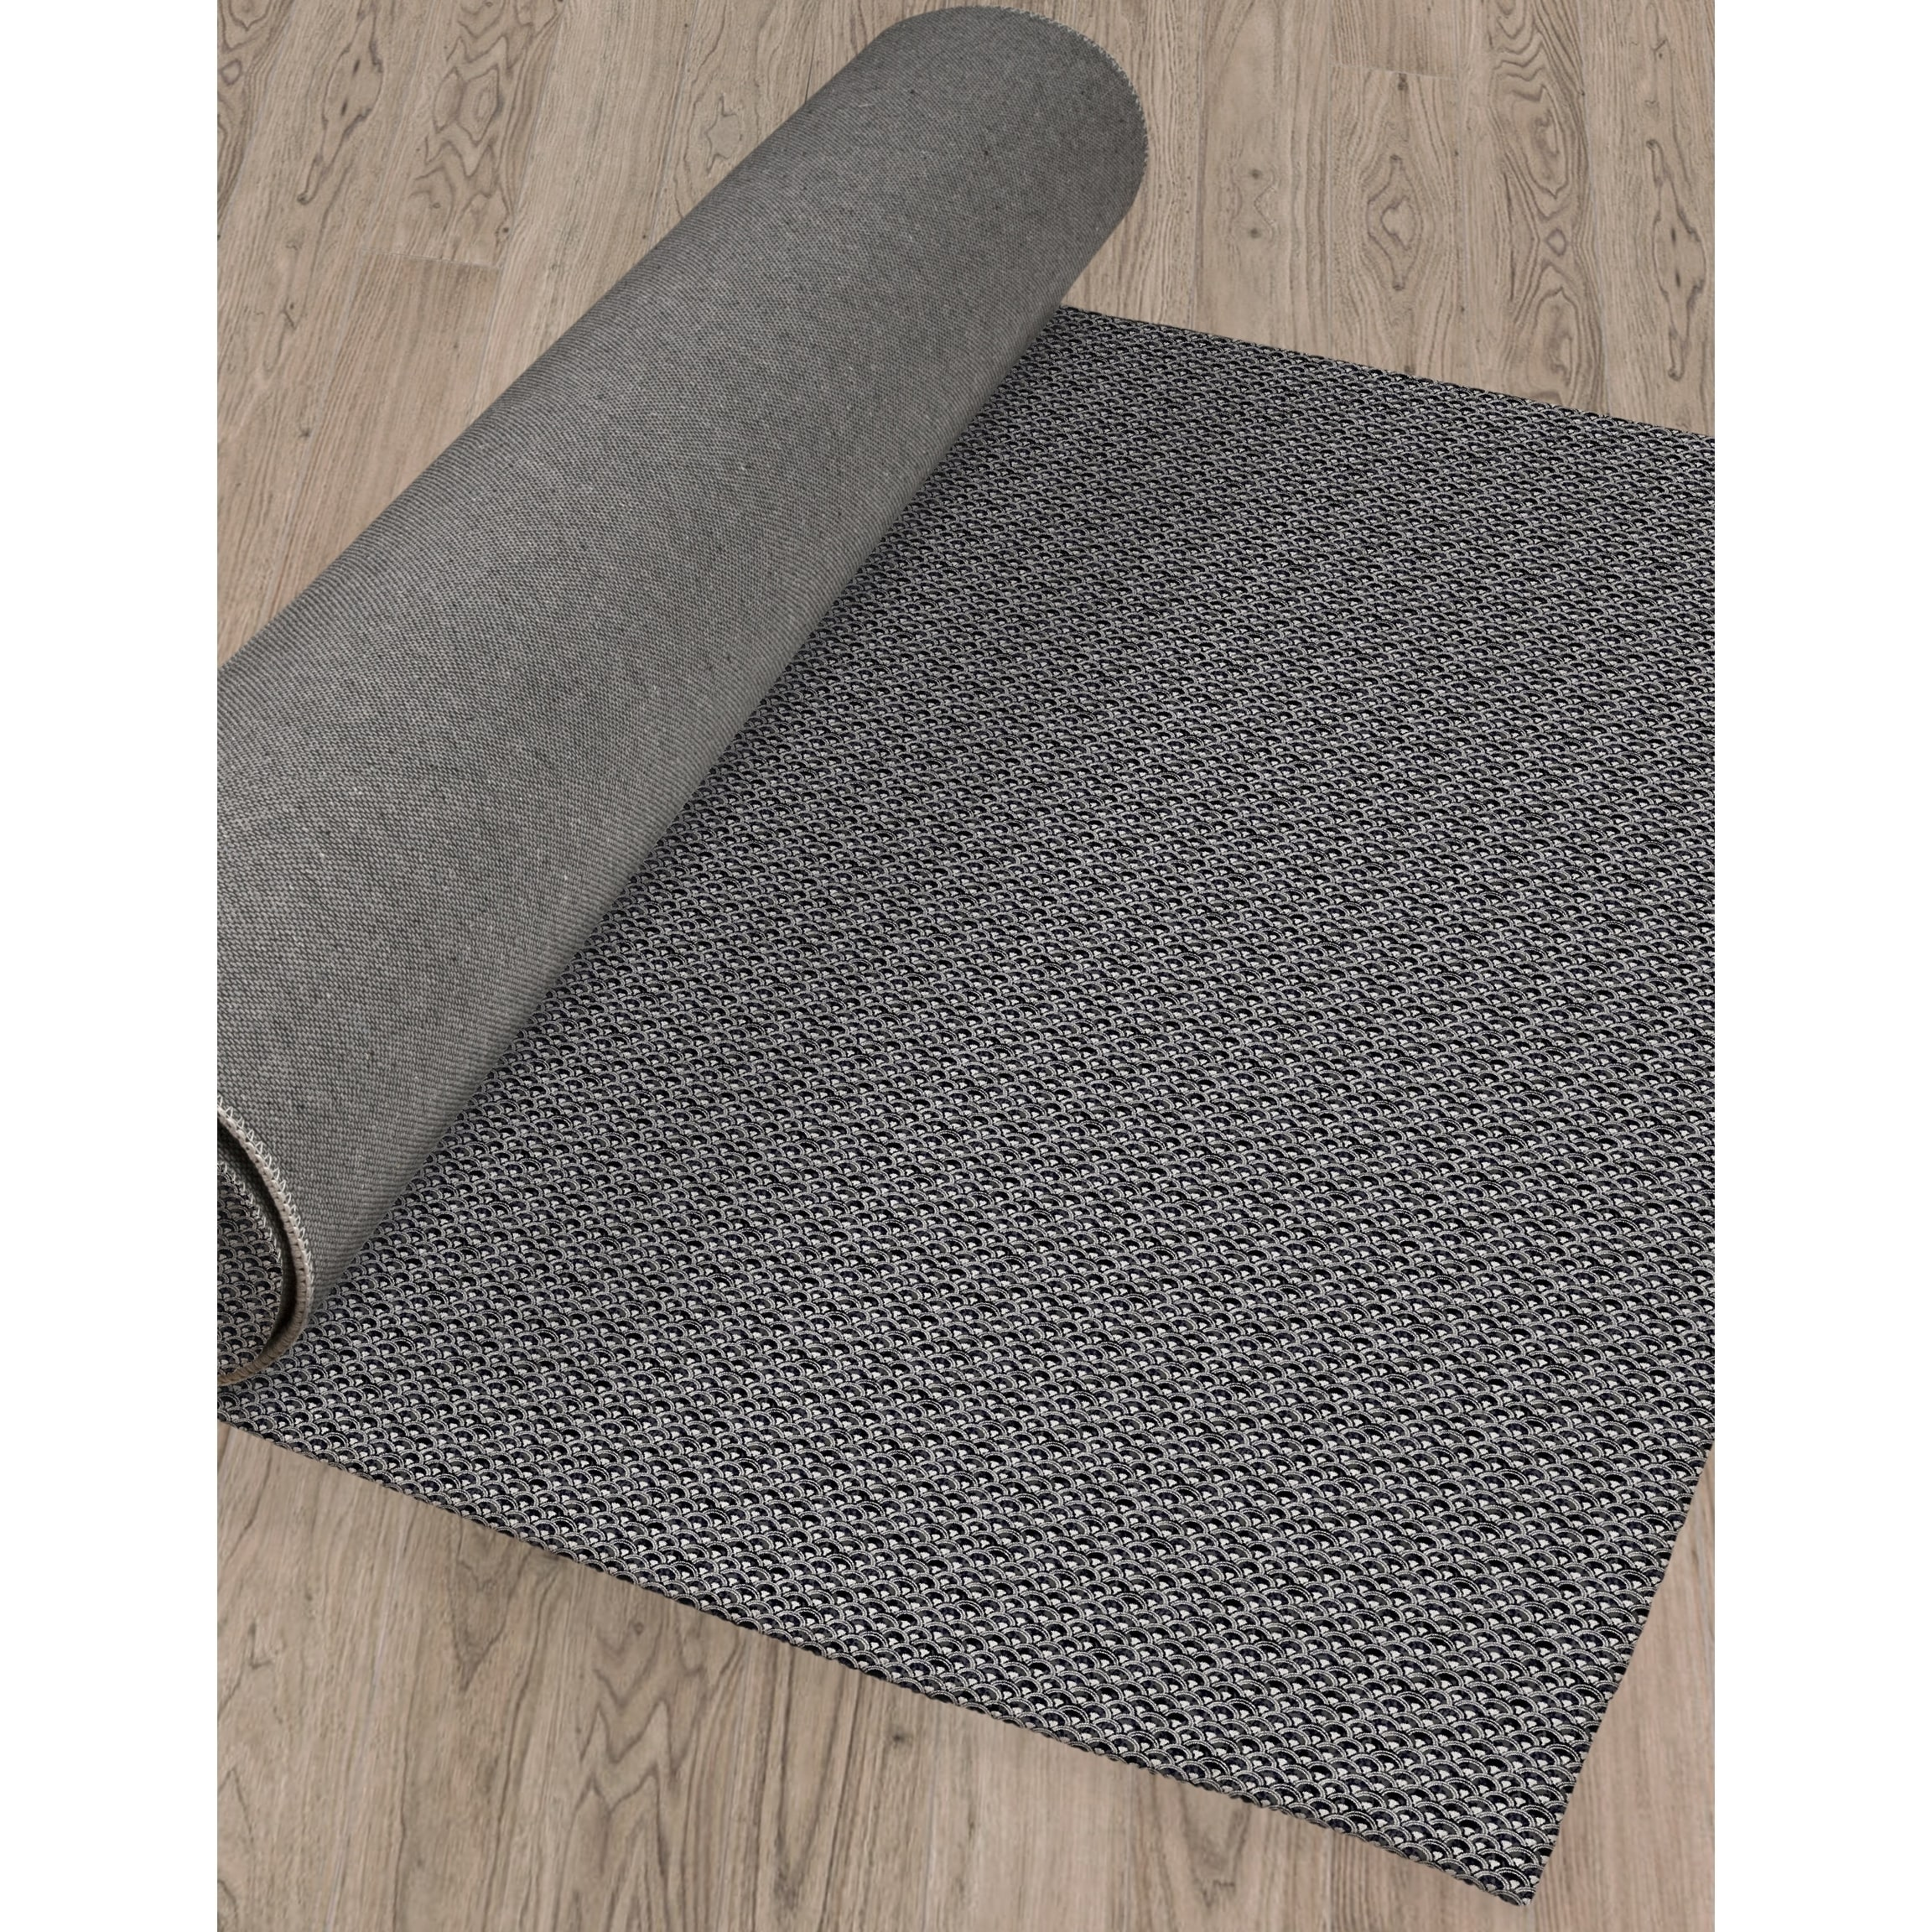 Fish Scales Bw Area Rug By Kavka Designs Overstock 28963006